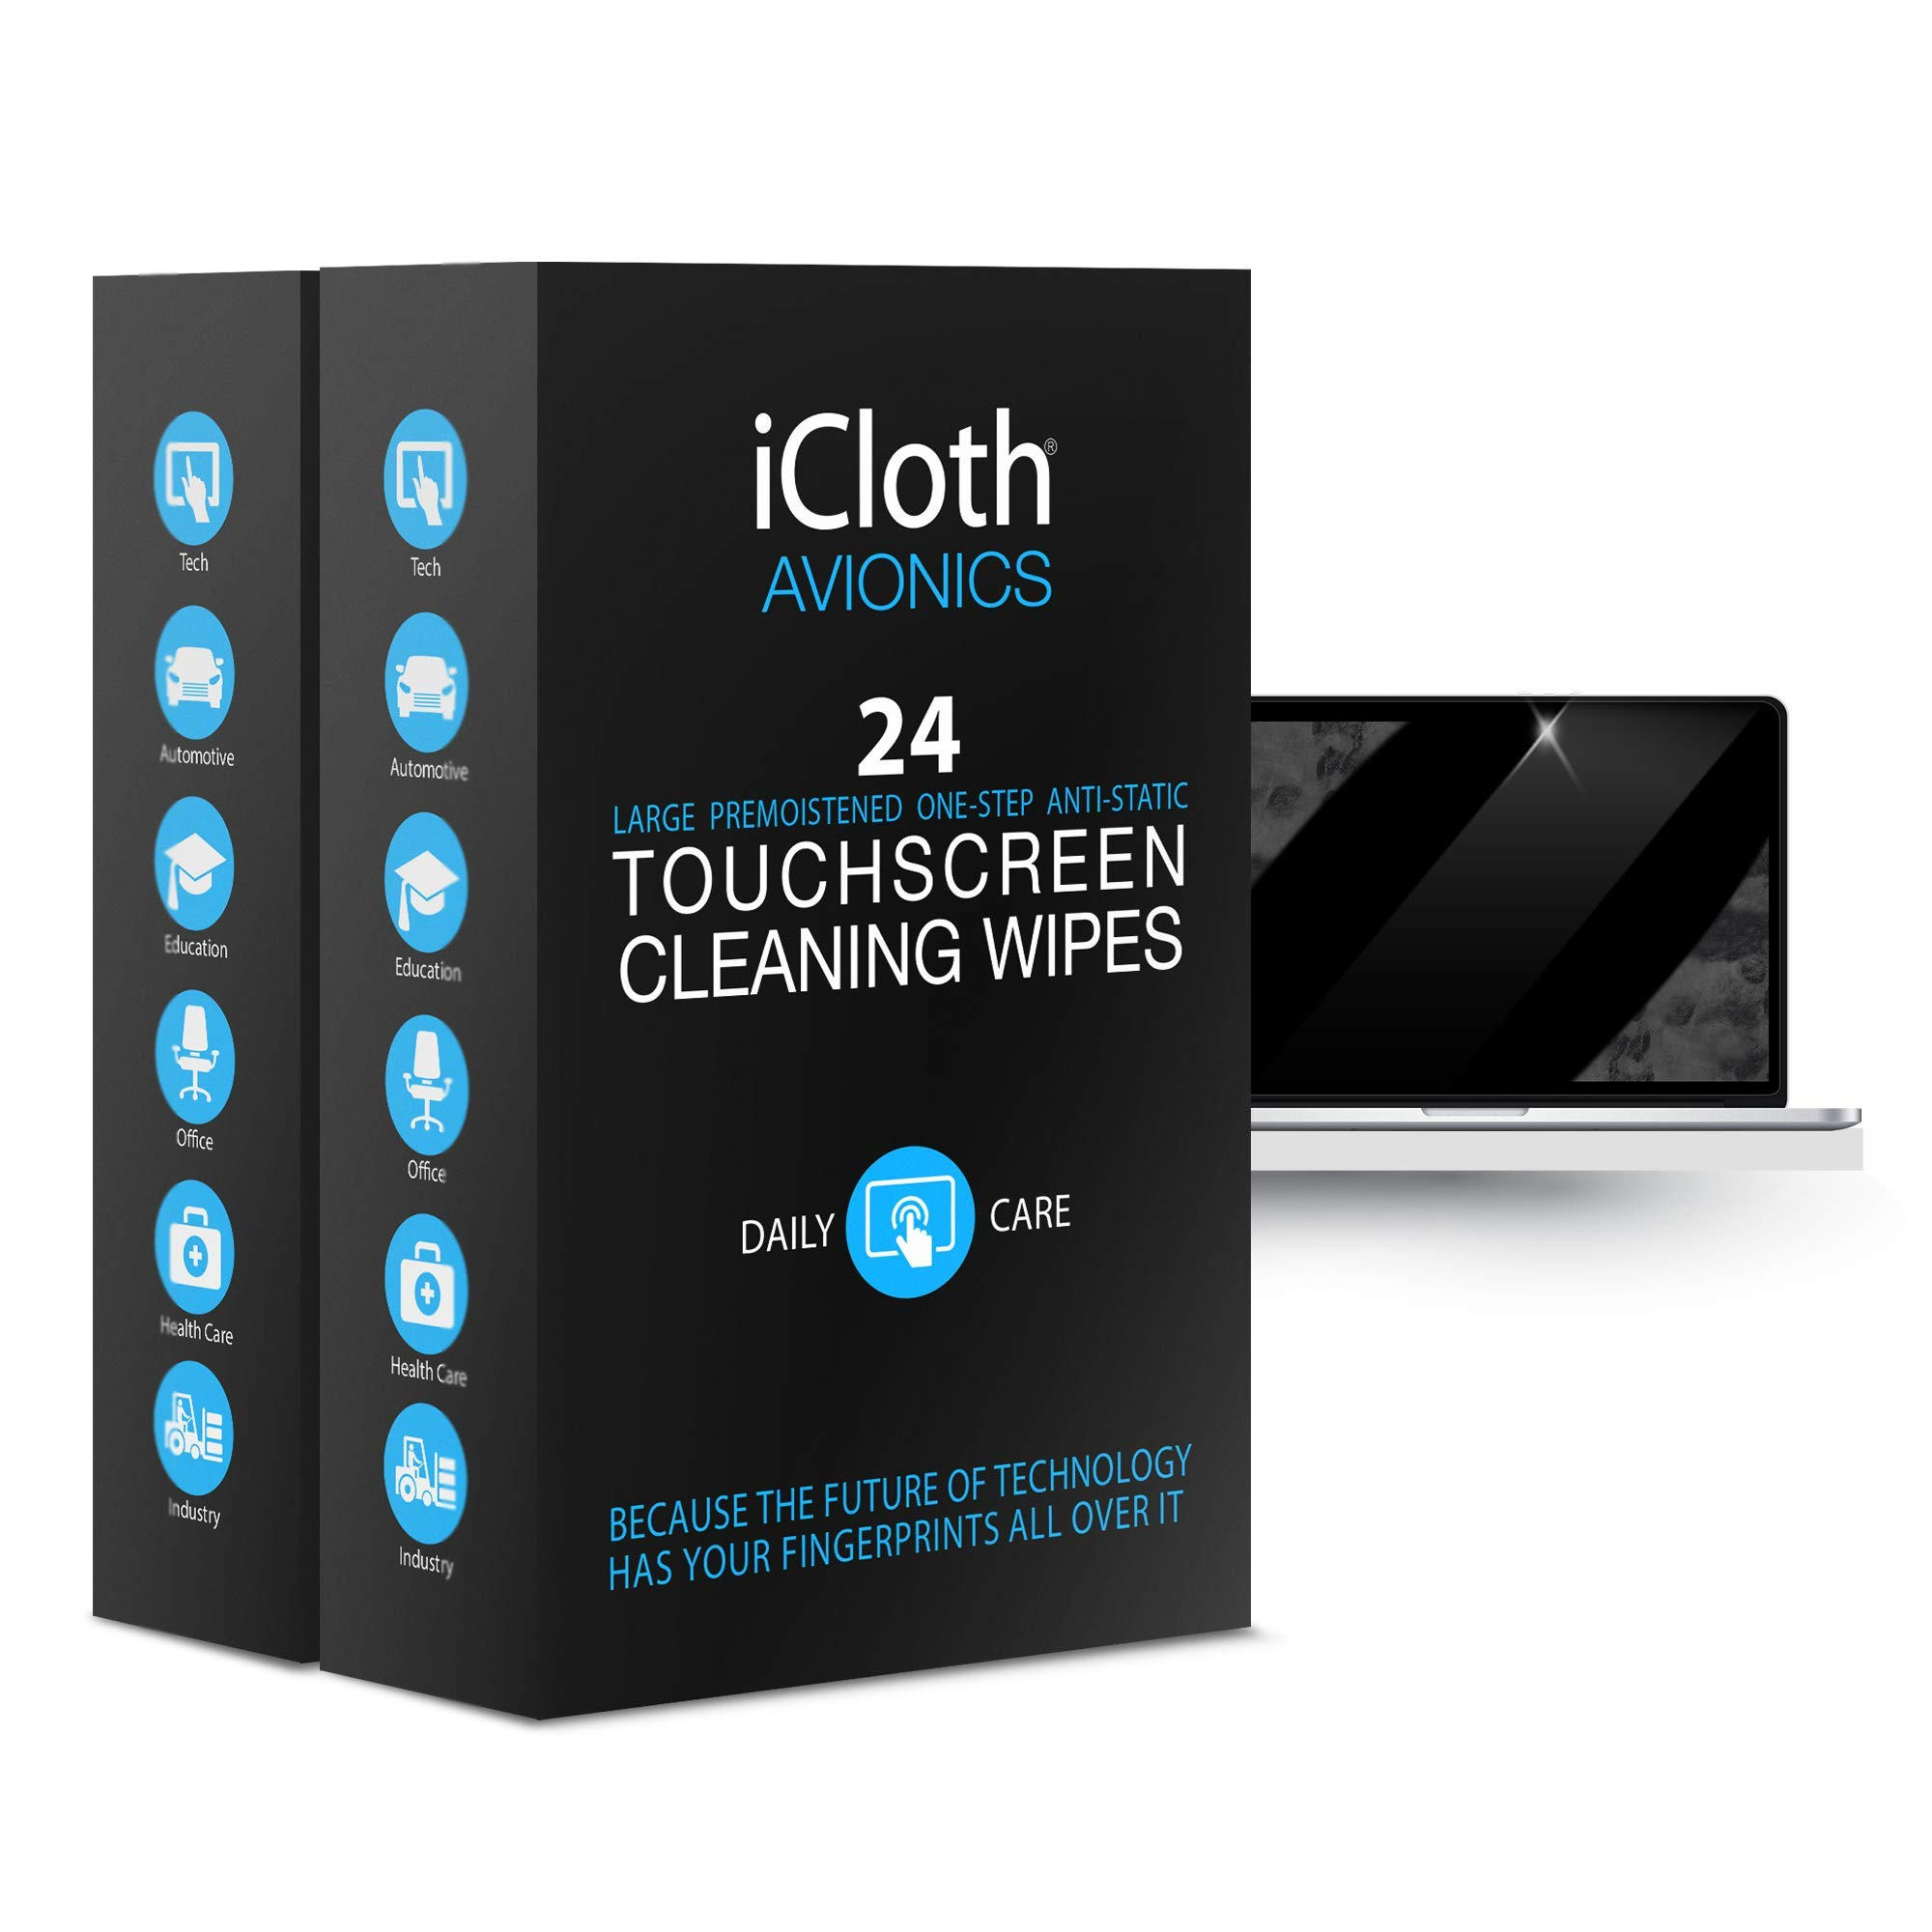 iCloth Large Screen Cleaning Wipes - Cleans and Protects a Computer Monitor, a Gaming PC a Touchscreen Desktop, a TV LED or LCD, Aviation and Automotive displays | iCA24x2 | 2 x 24 Wipe Box